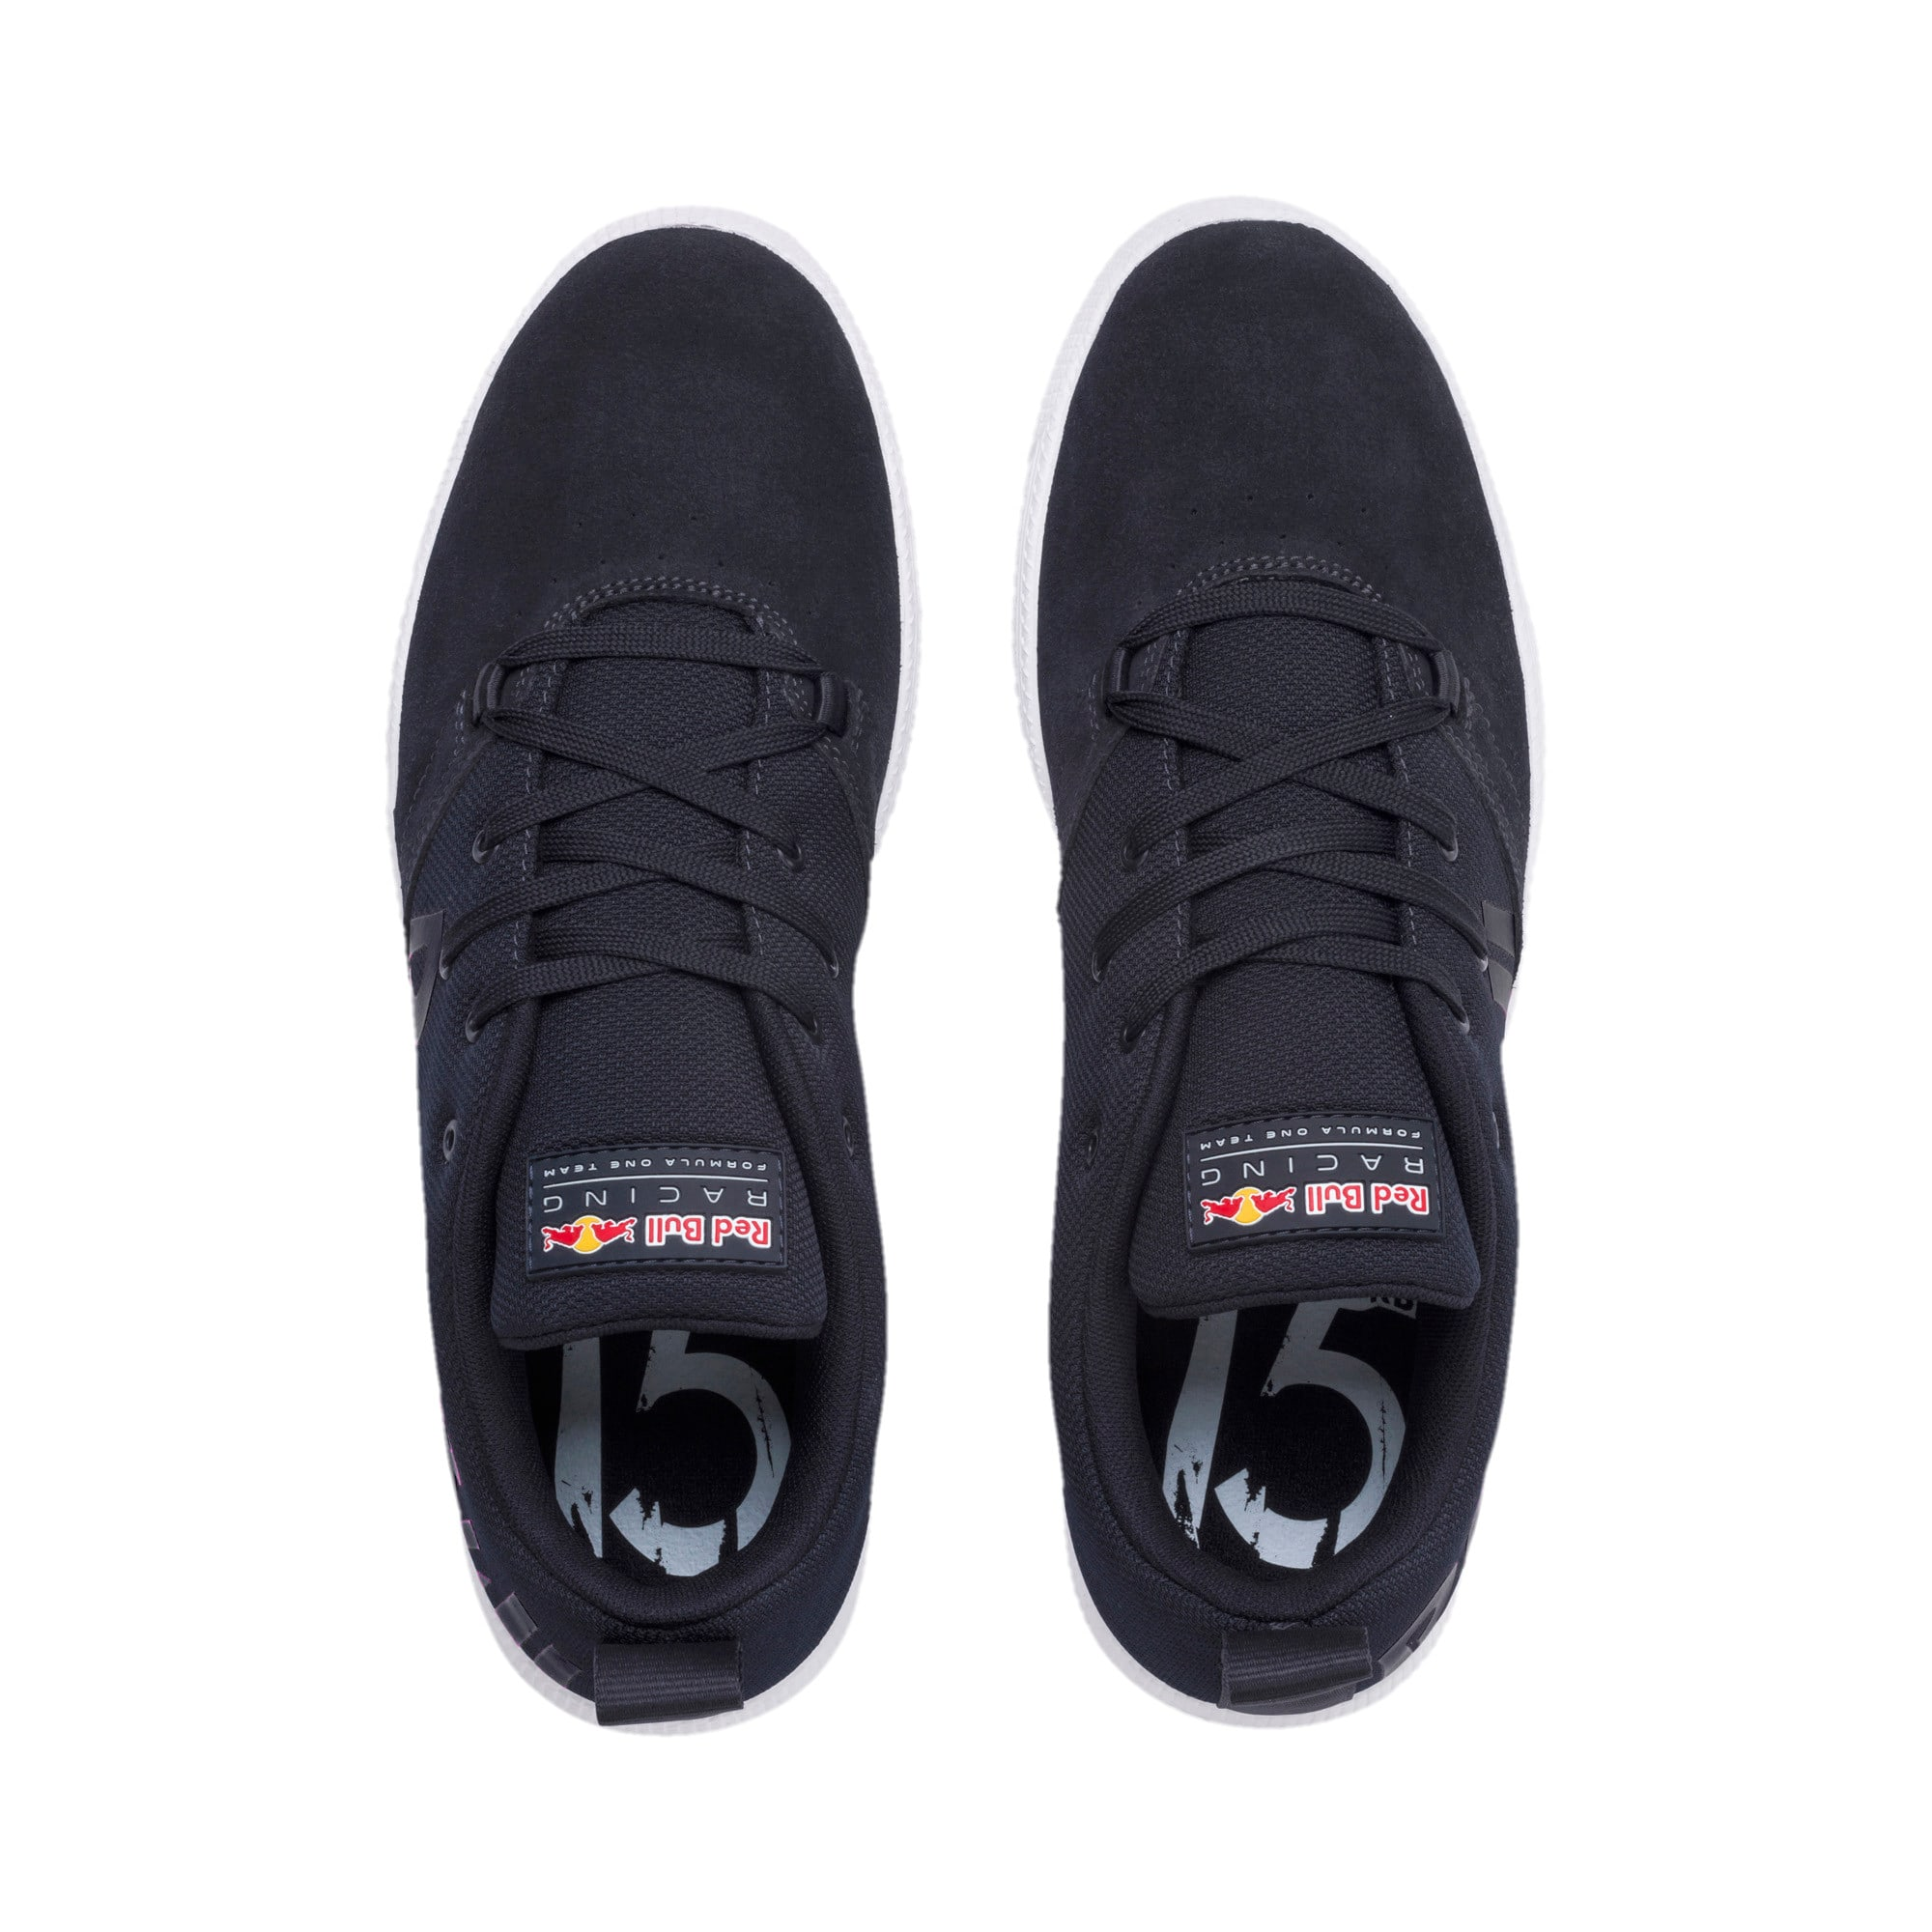 Thumbnail 6 of Red Bull Racing Cups Lo Trainers, NIGHT SKY-White-Chinese Red, medium-IND